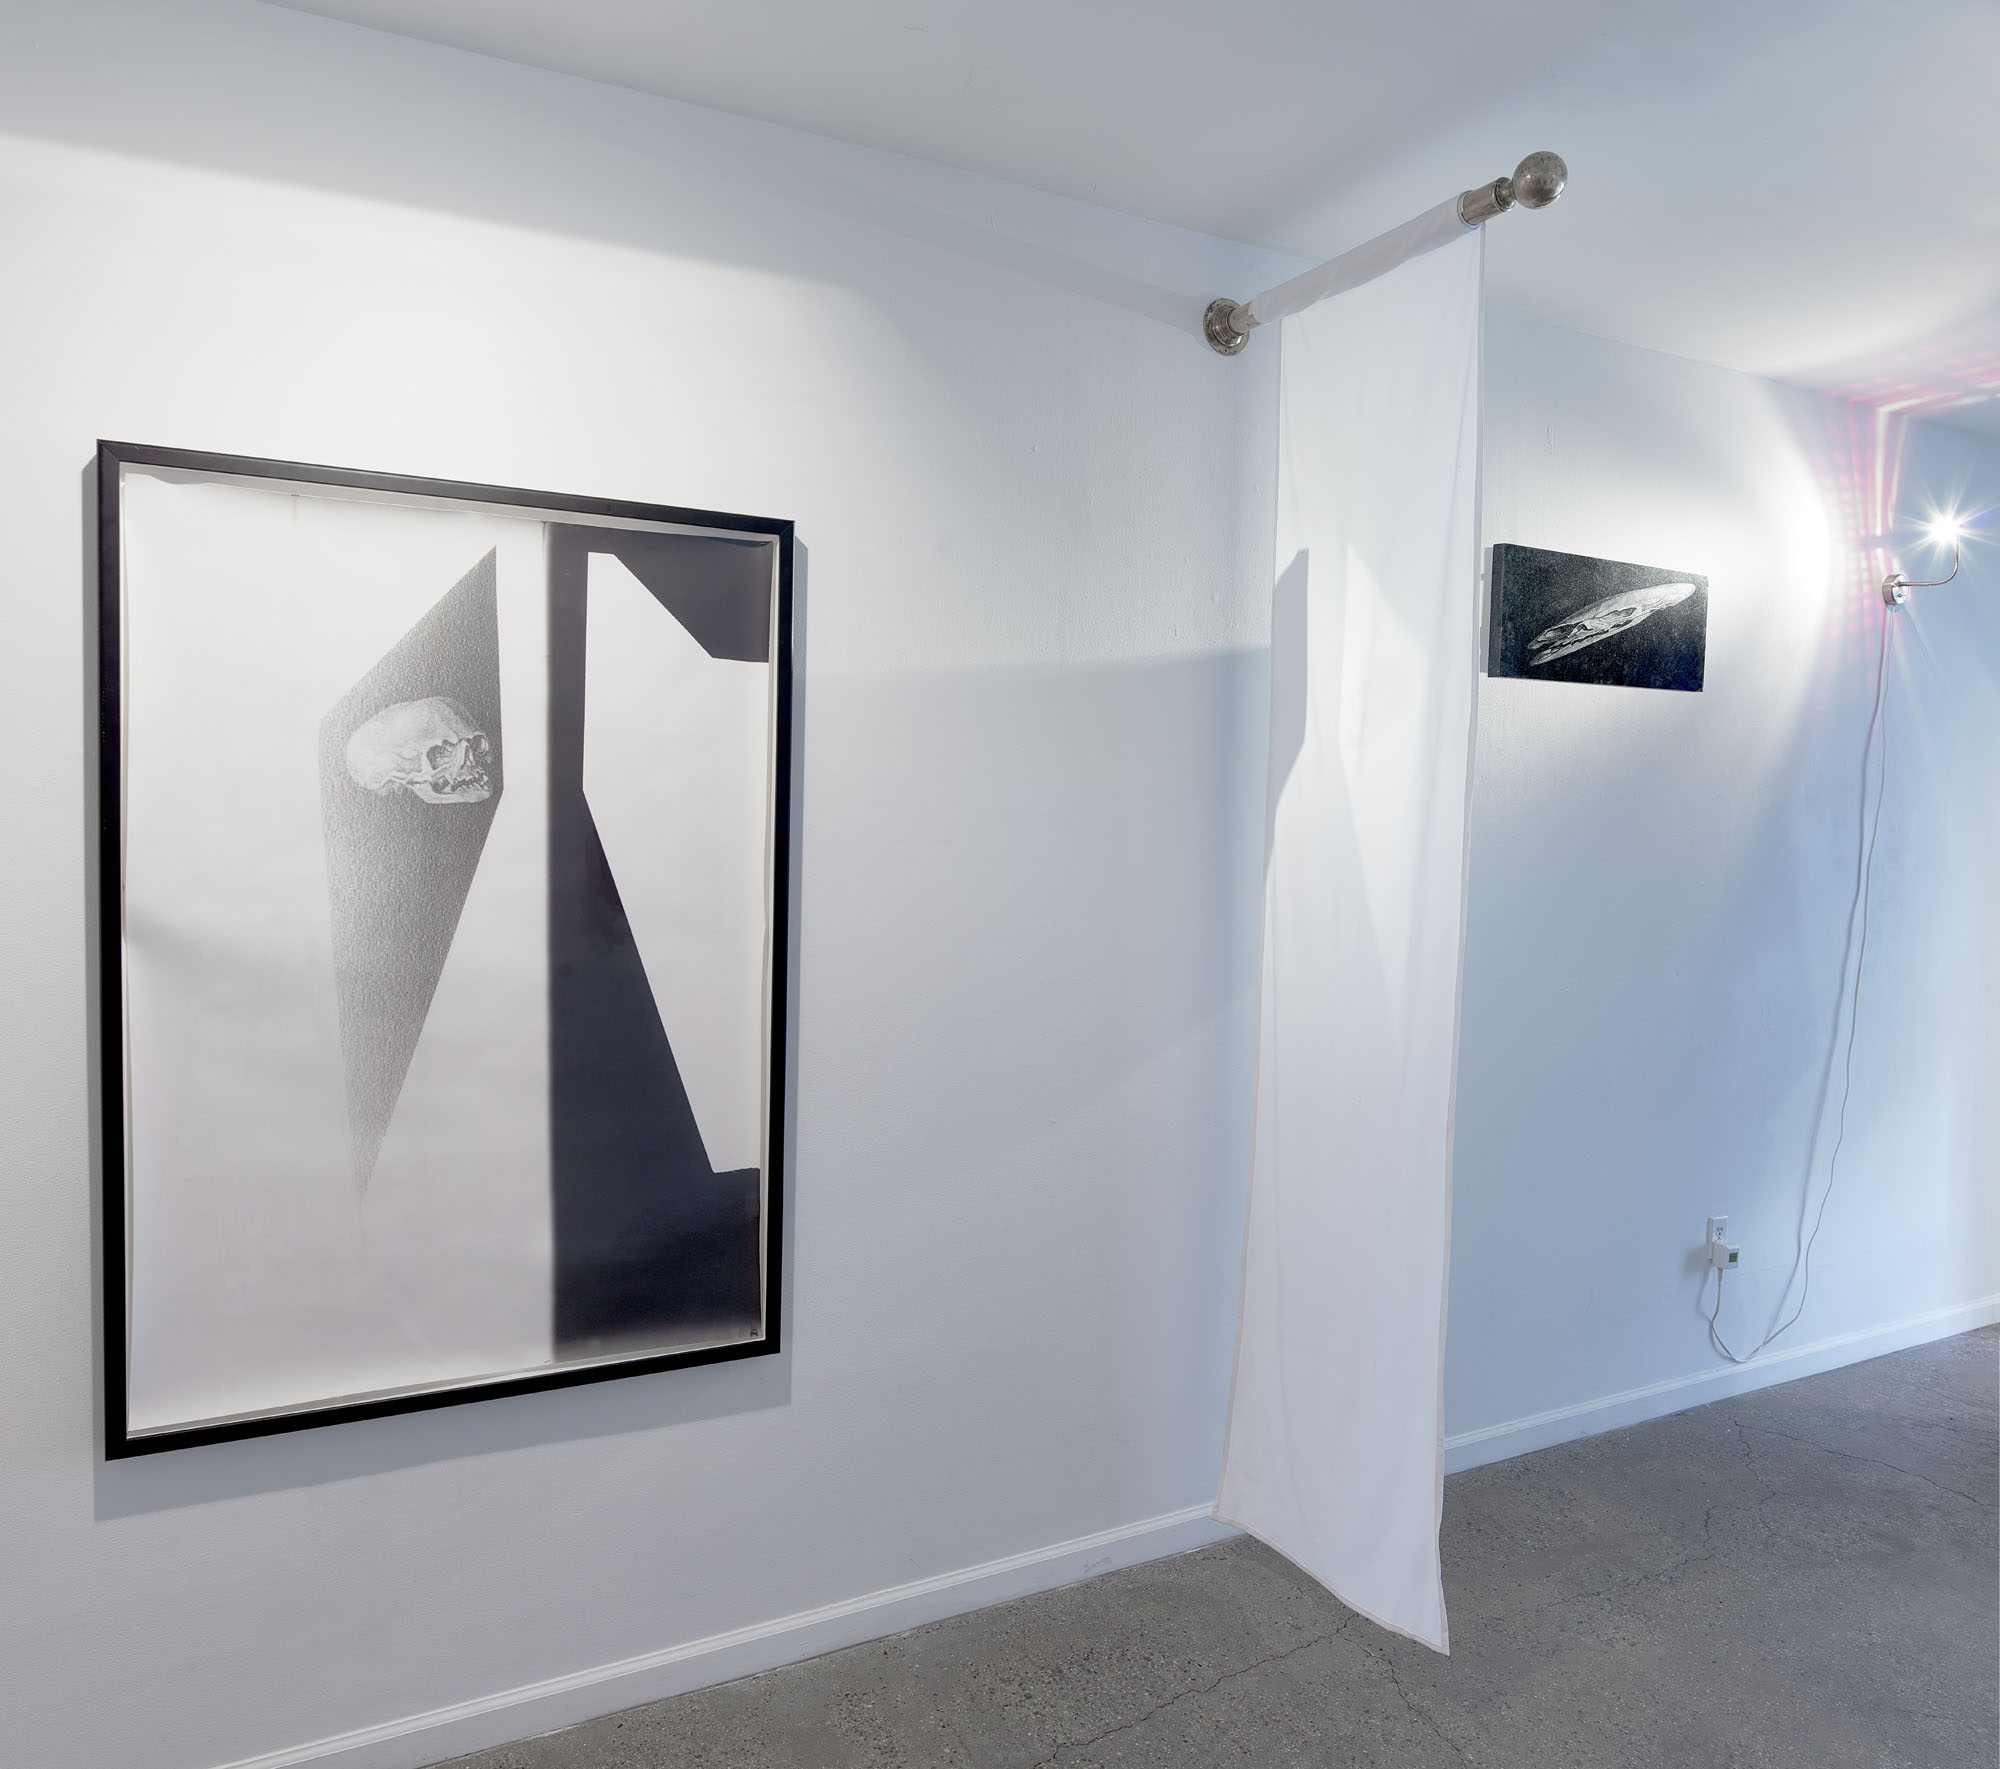 Installation view from Light/Weight with works by Steve Pauley